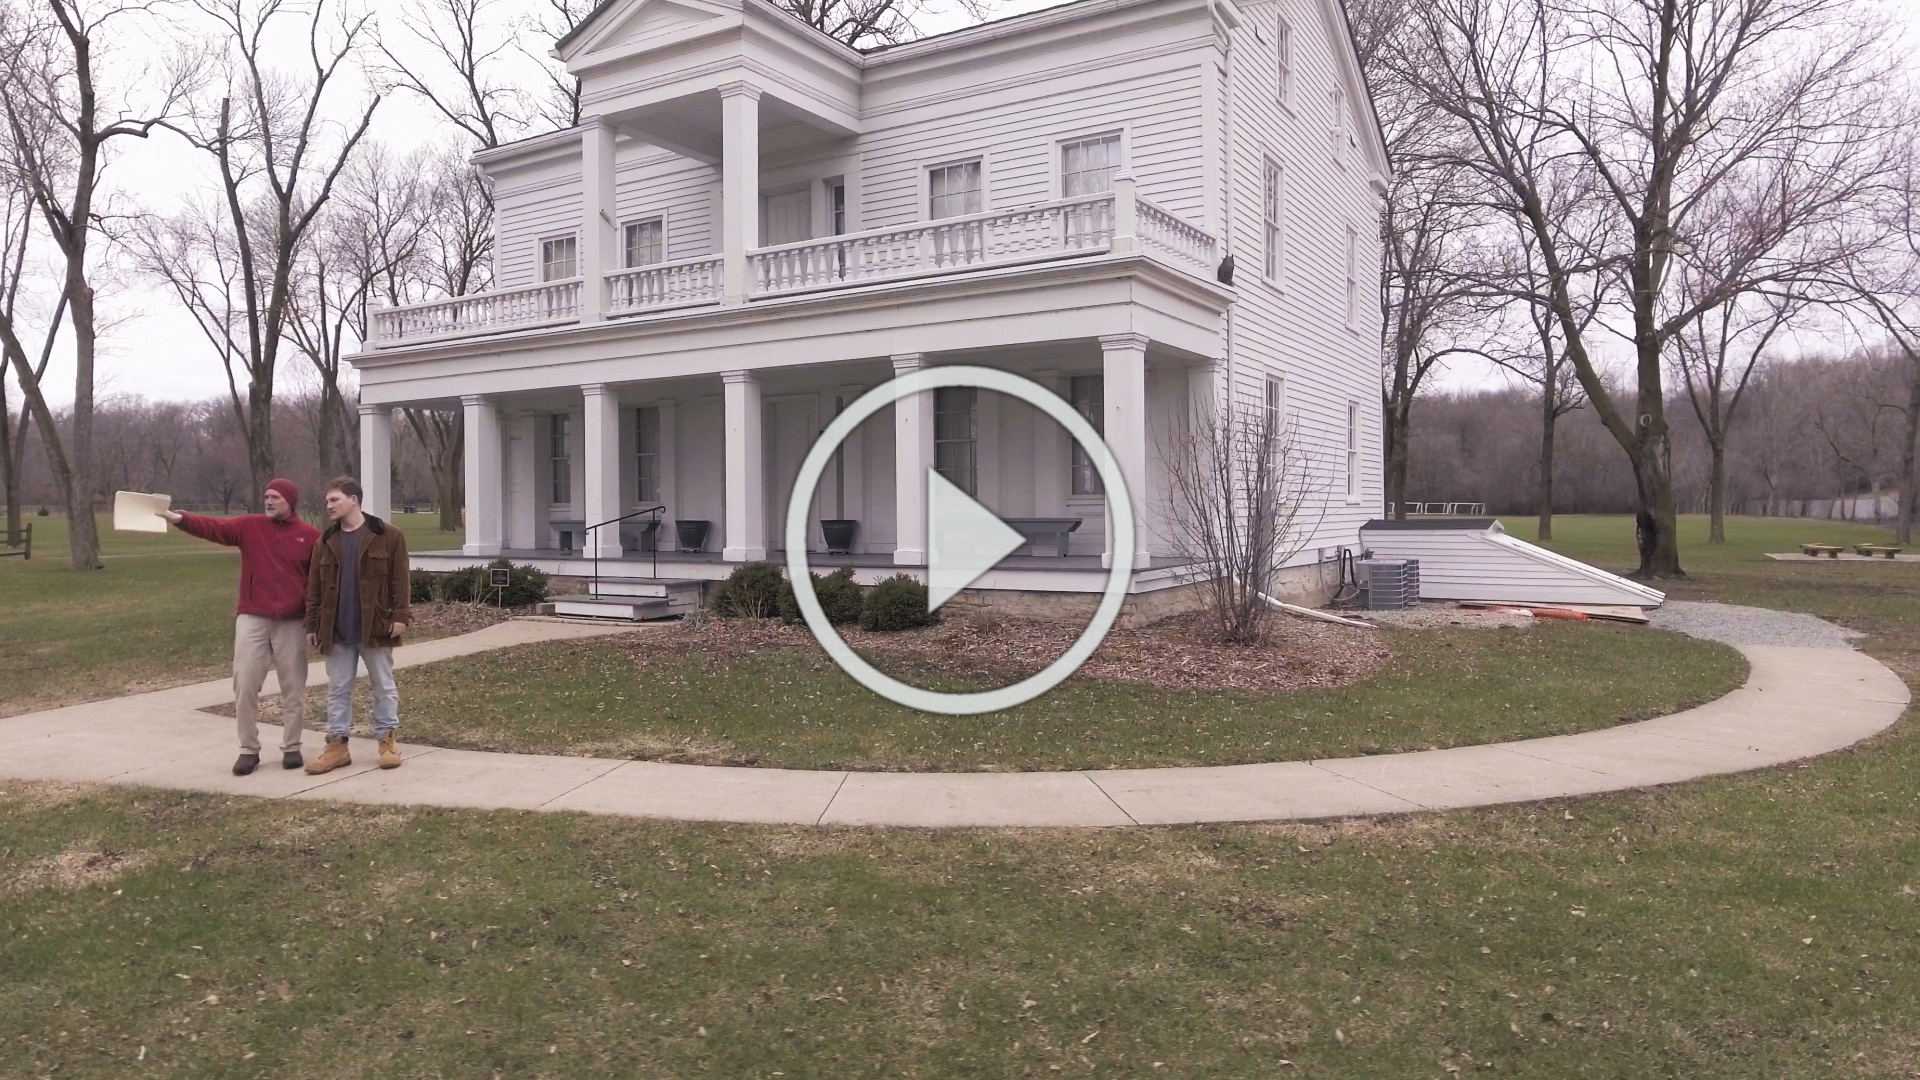 Link to video of Peter N. Peregrine and Winston Klapper on the Grignon Mansion property.